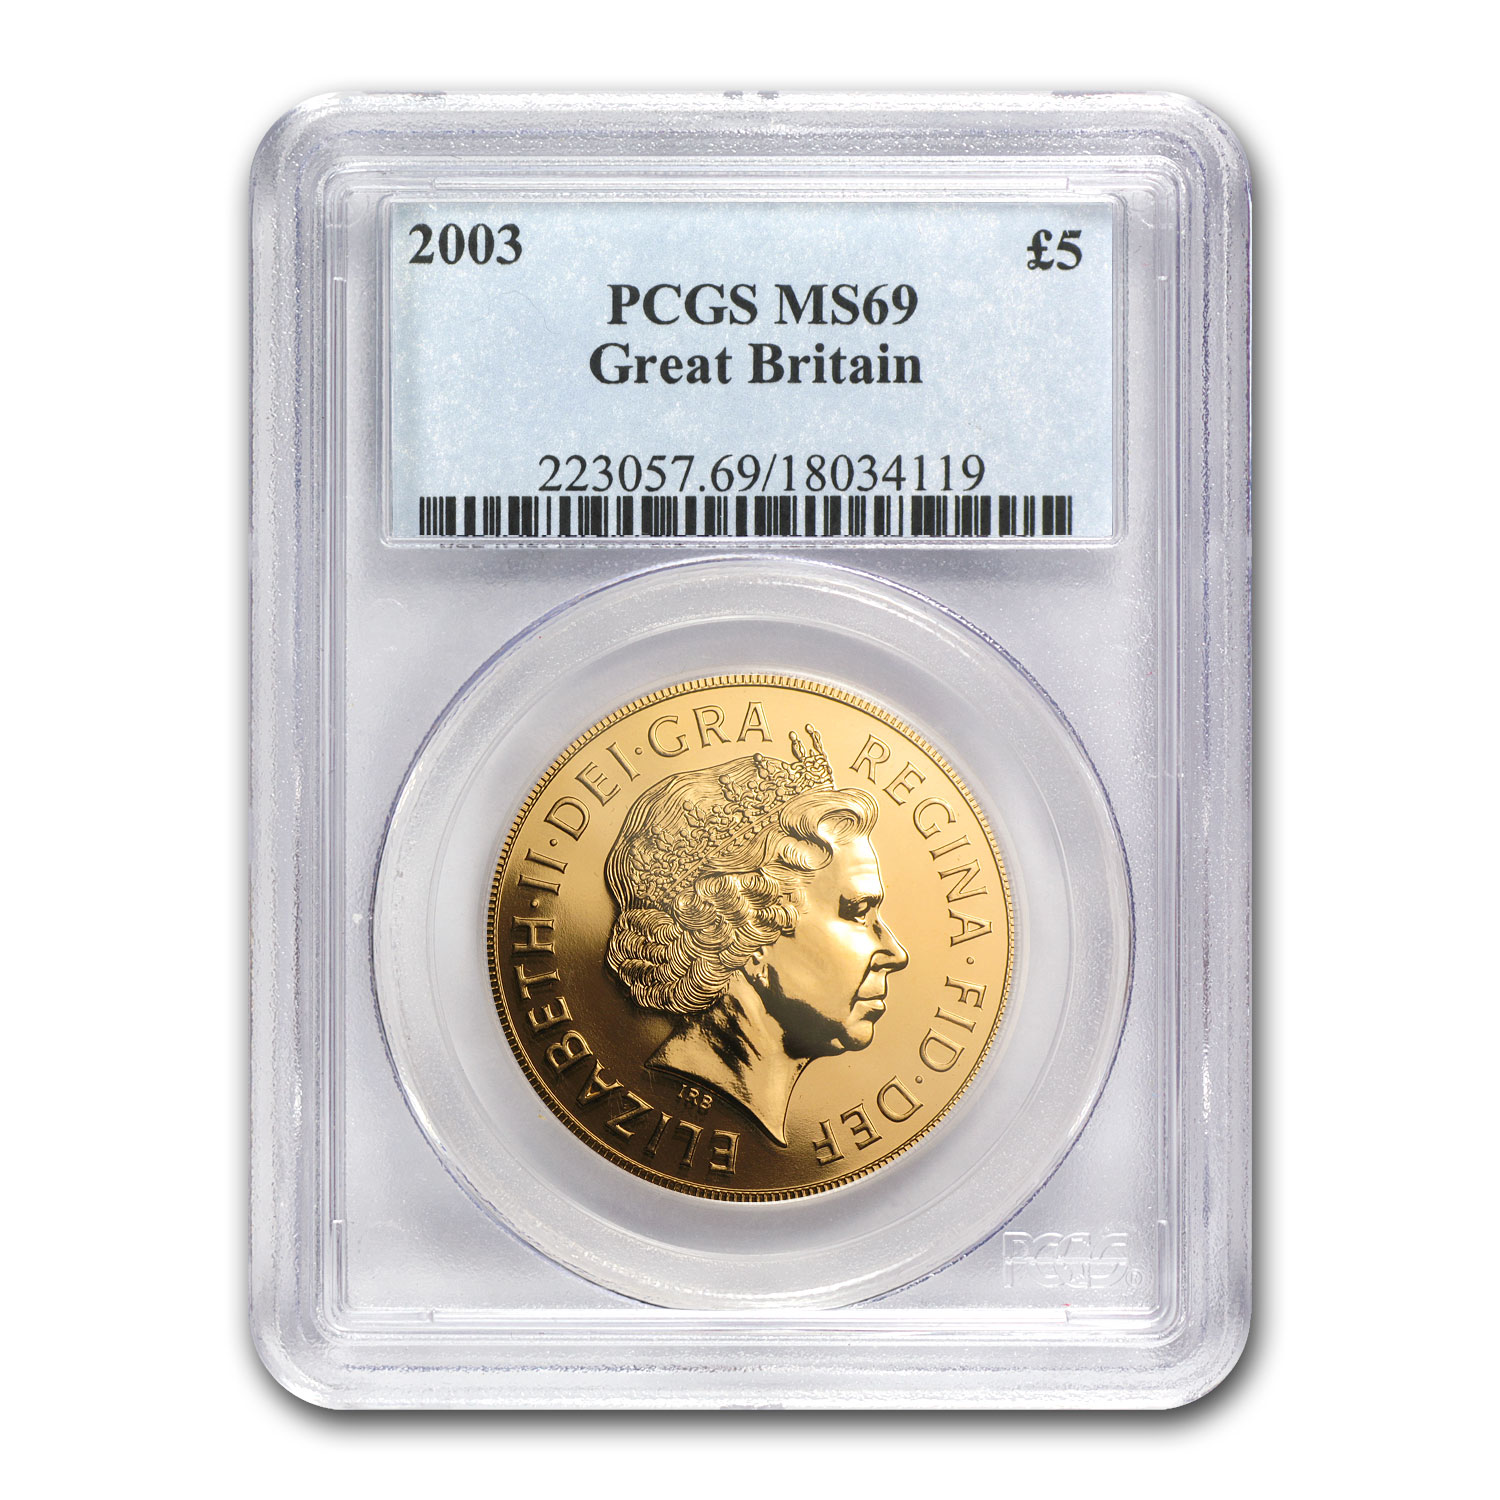 Great Britain 2003 Gold 5 Pounds Sovereign MS-69 PCGS